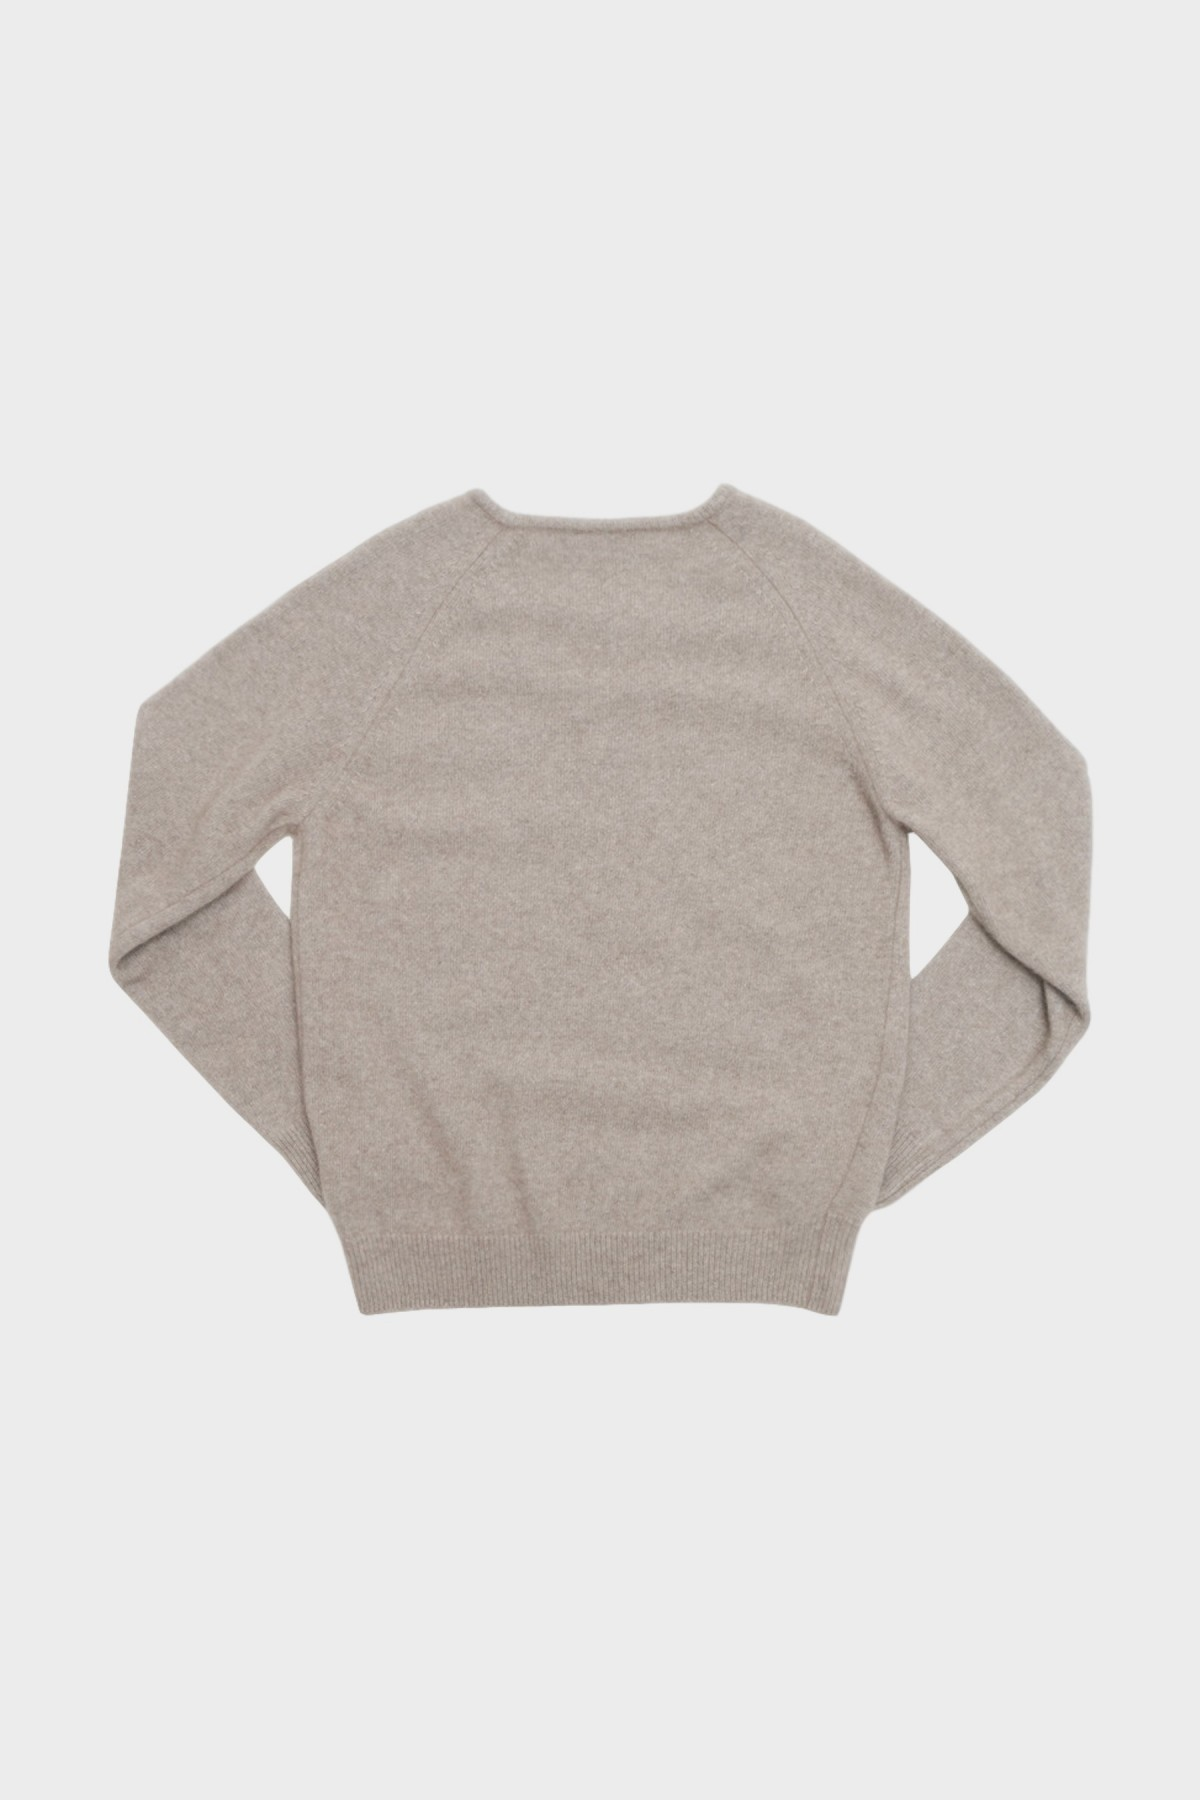 Amomento Racoon V-Neck Knit in Beige